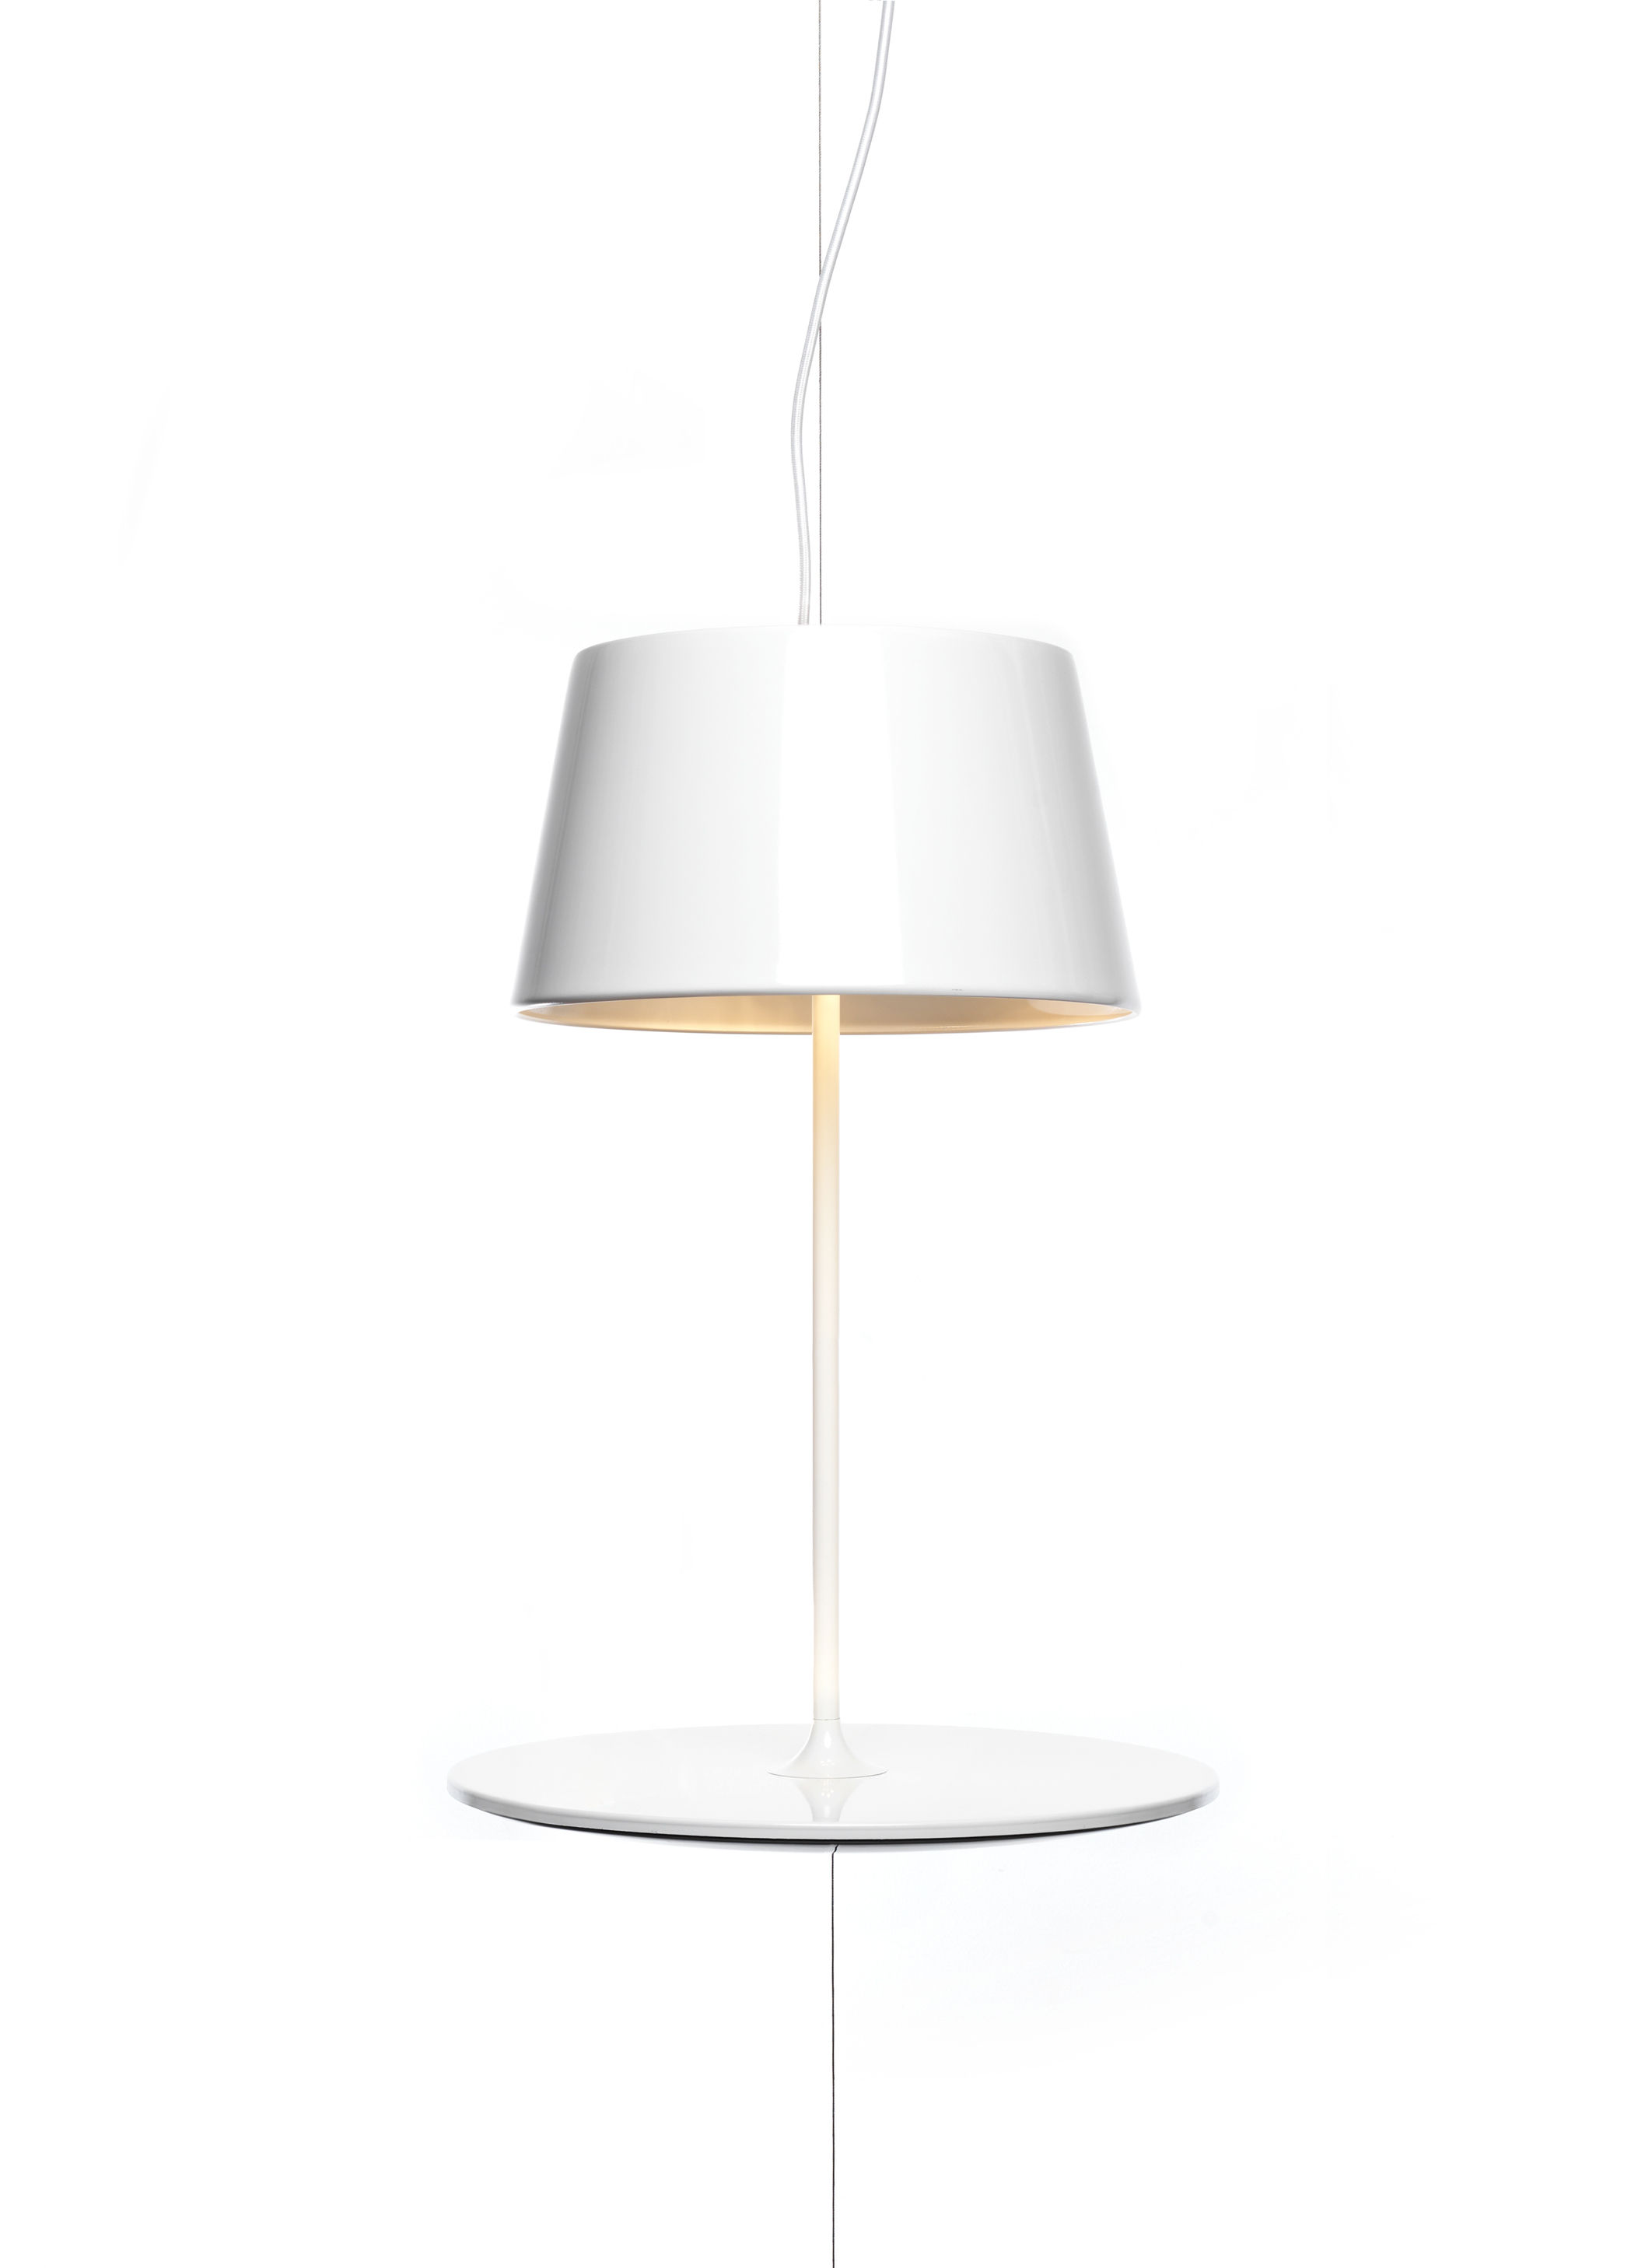 Lighting - Pendant Lighting - Illusion Pendant - Small table by Northern  - White - Lacquered aluminium, Lacquered steel